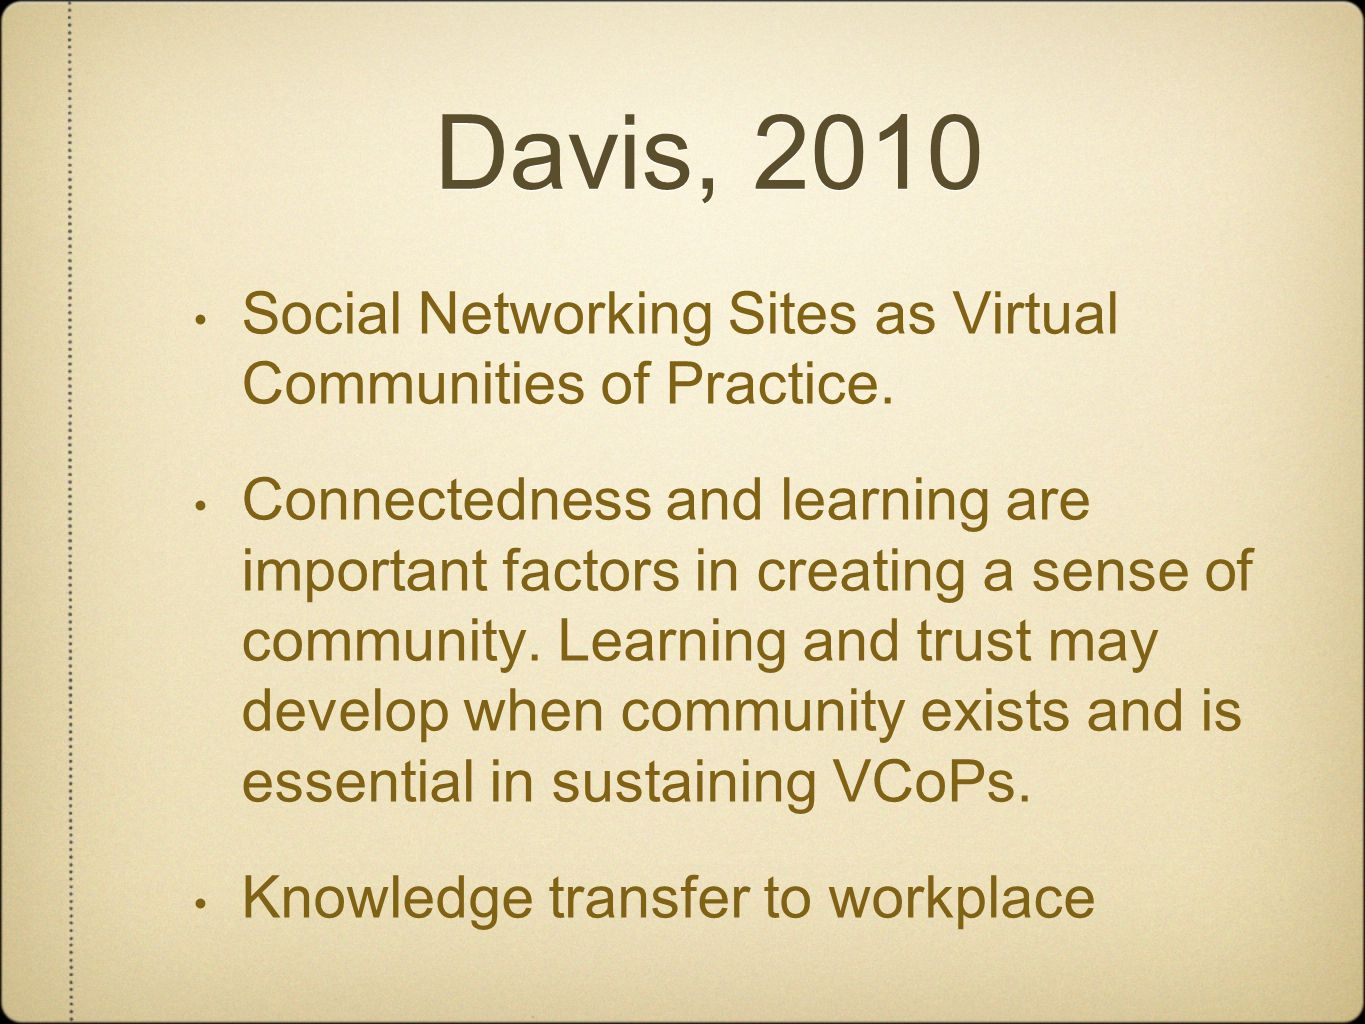 Davis, 2010 Social Networking Sites as Virtual Communities of Practice.